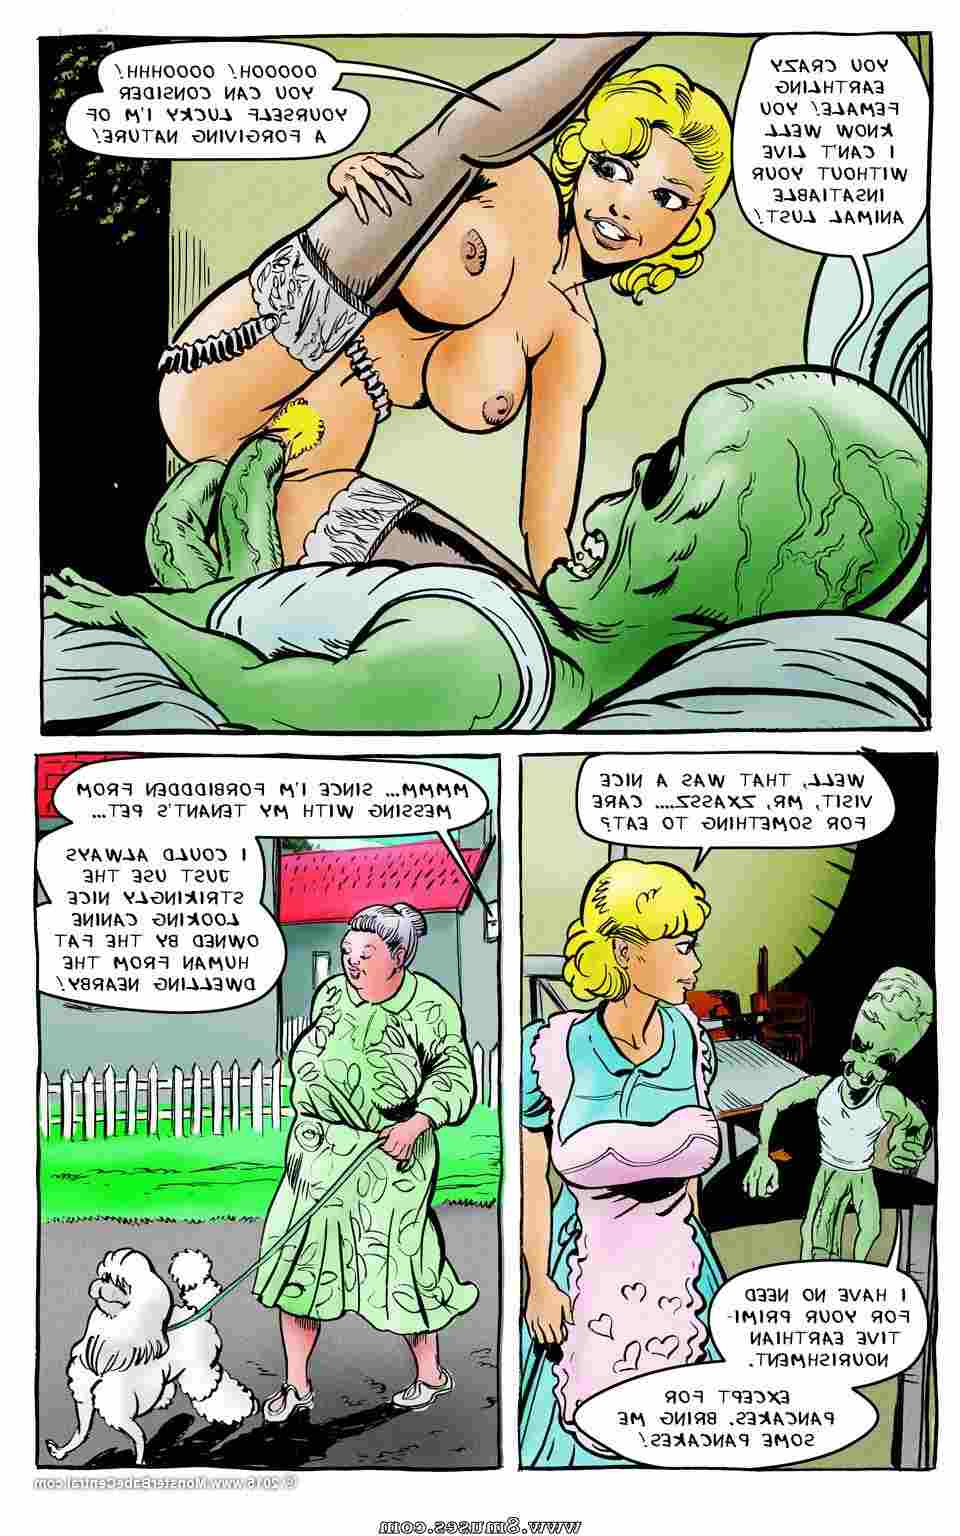 Central-Comics/Monster-Babe-Central/Monster-Channel Monster_Channel__8muses_-_Sex_and_Porn_Comics_187.jpg